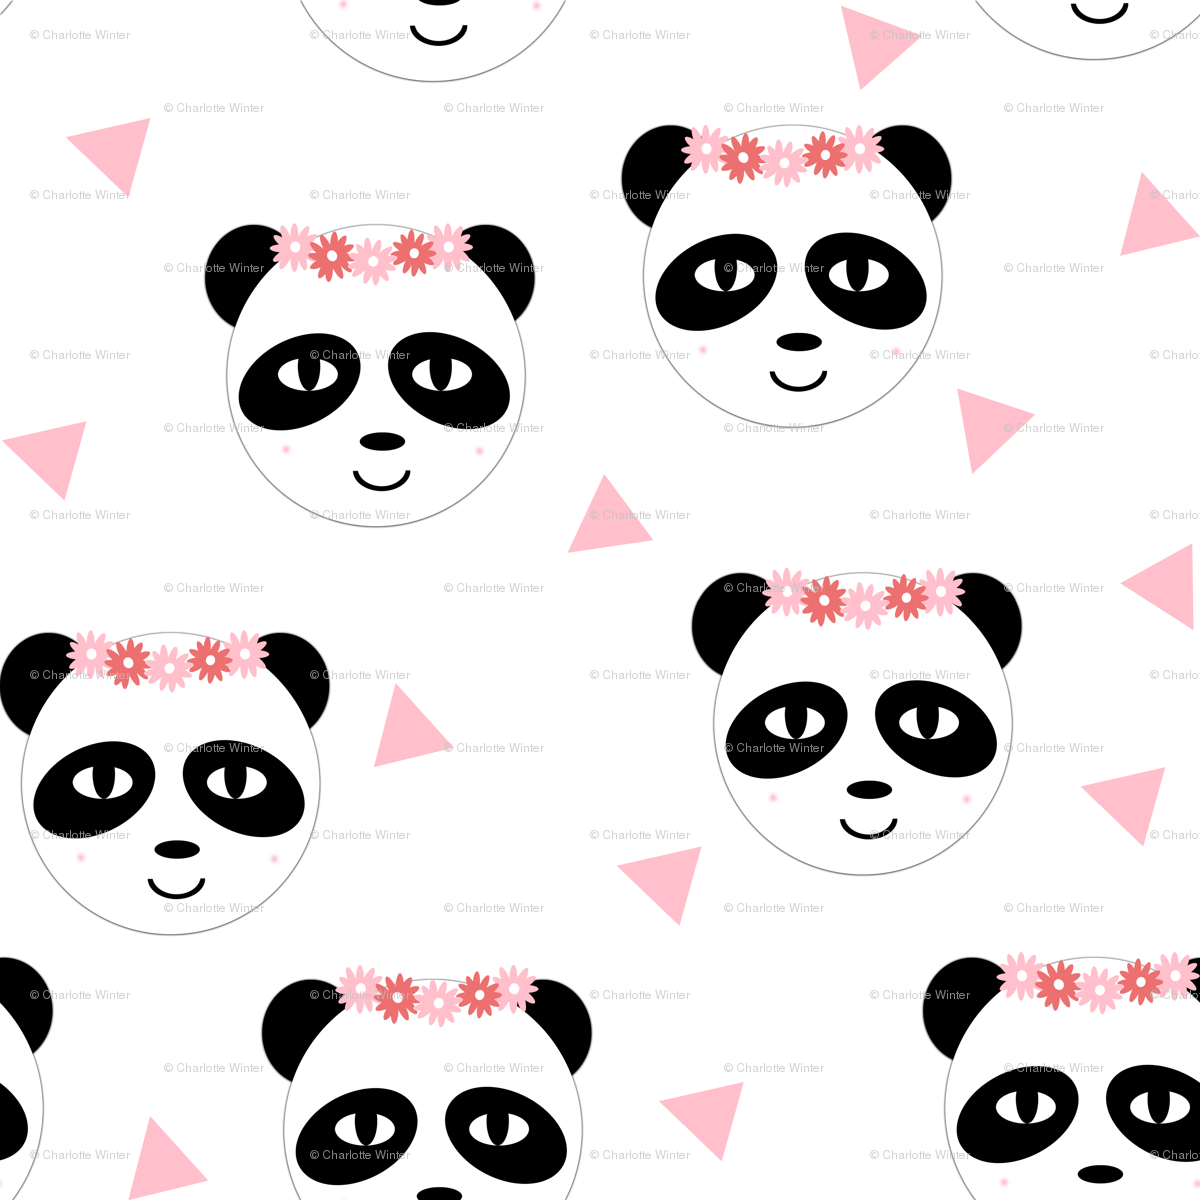 Panda Flower Crown Pink Girly Cute Tri Triangle Pastel Black And